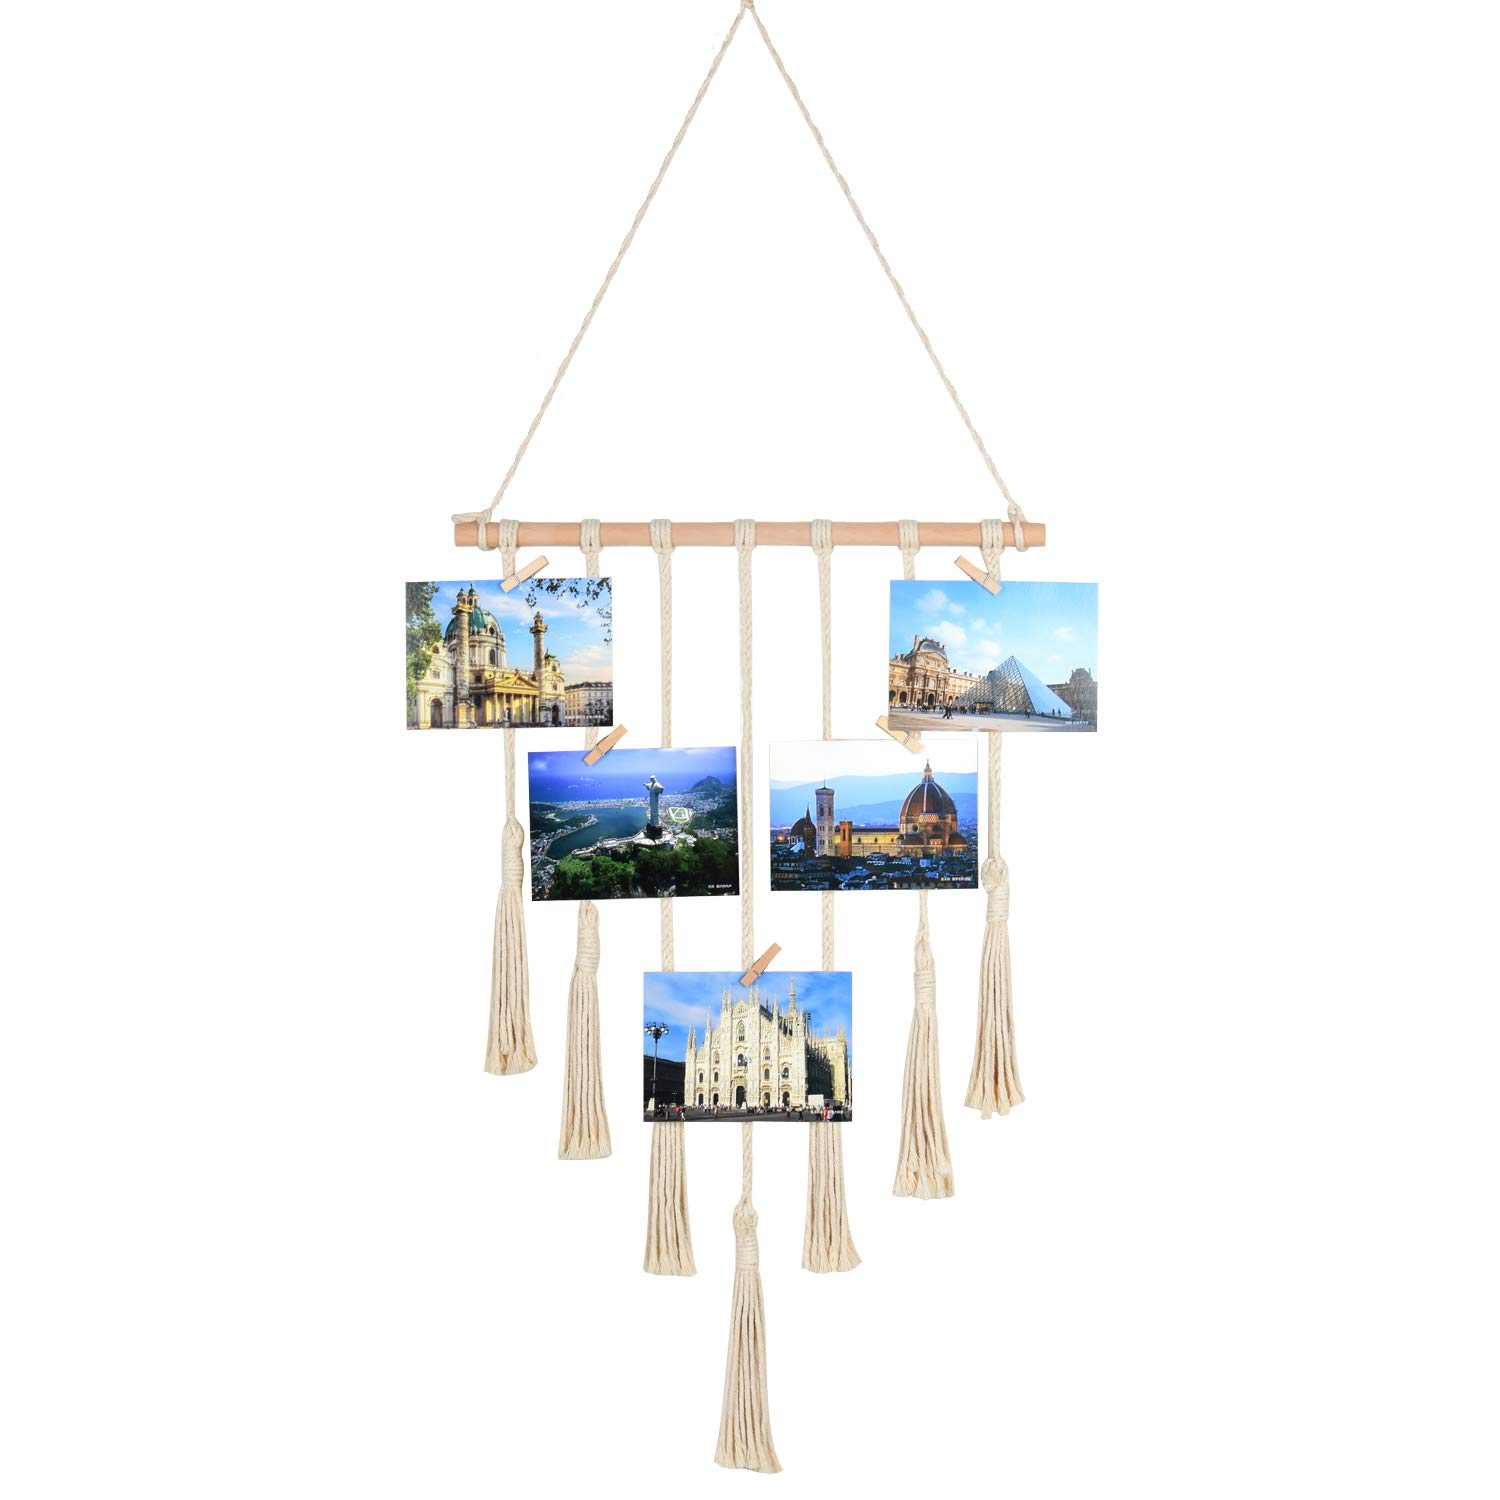 Seamersey Photo Hanging Display Frames Macrame Wall Hanging Pictures Organizer Home and Wall Decor with 25 Wood Clips(Beige)